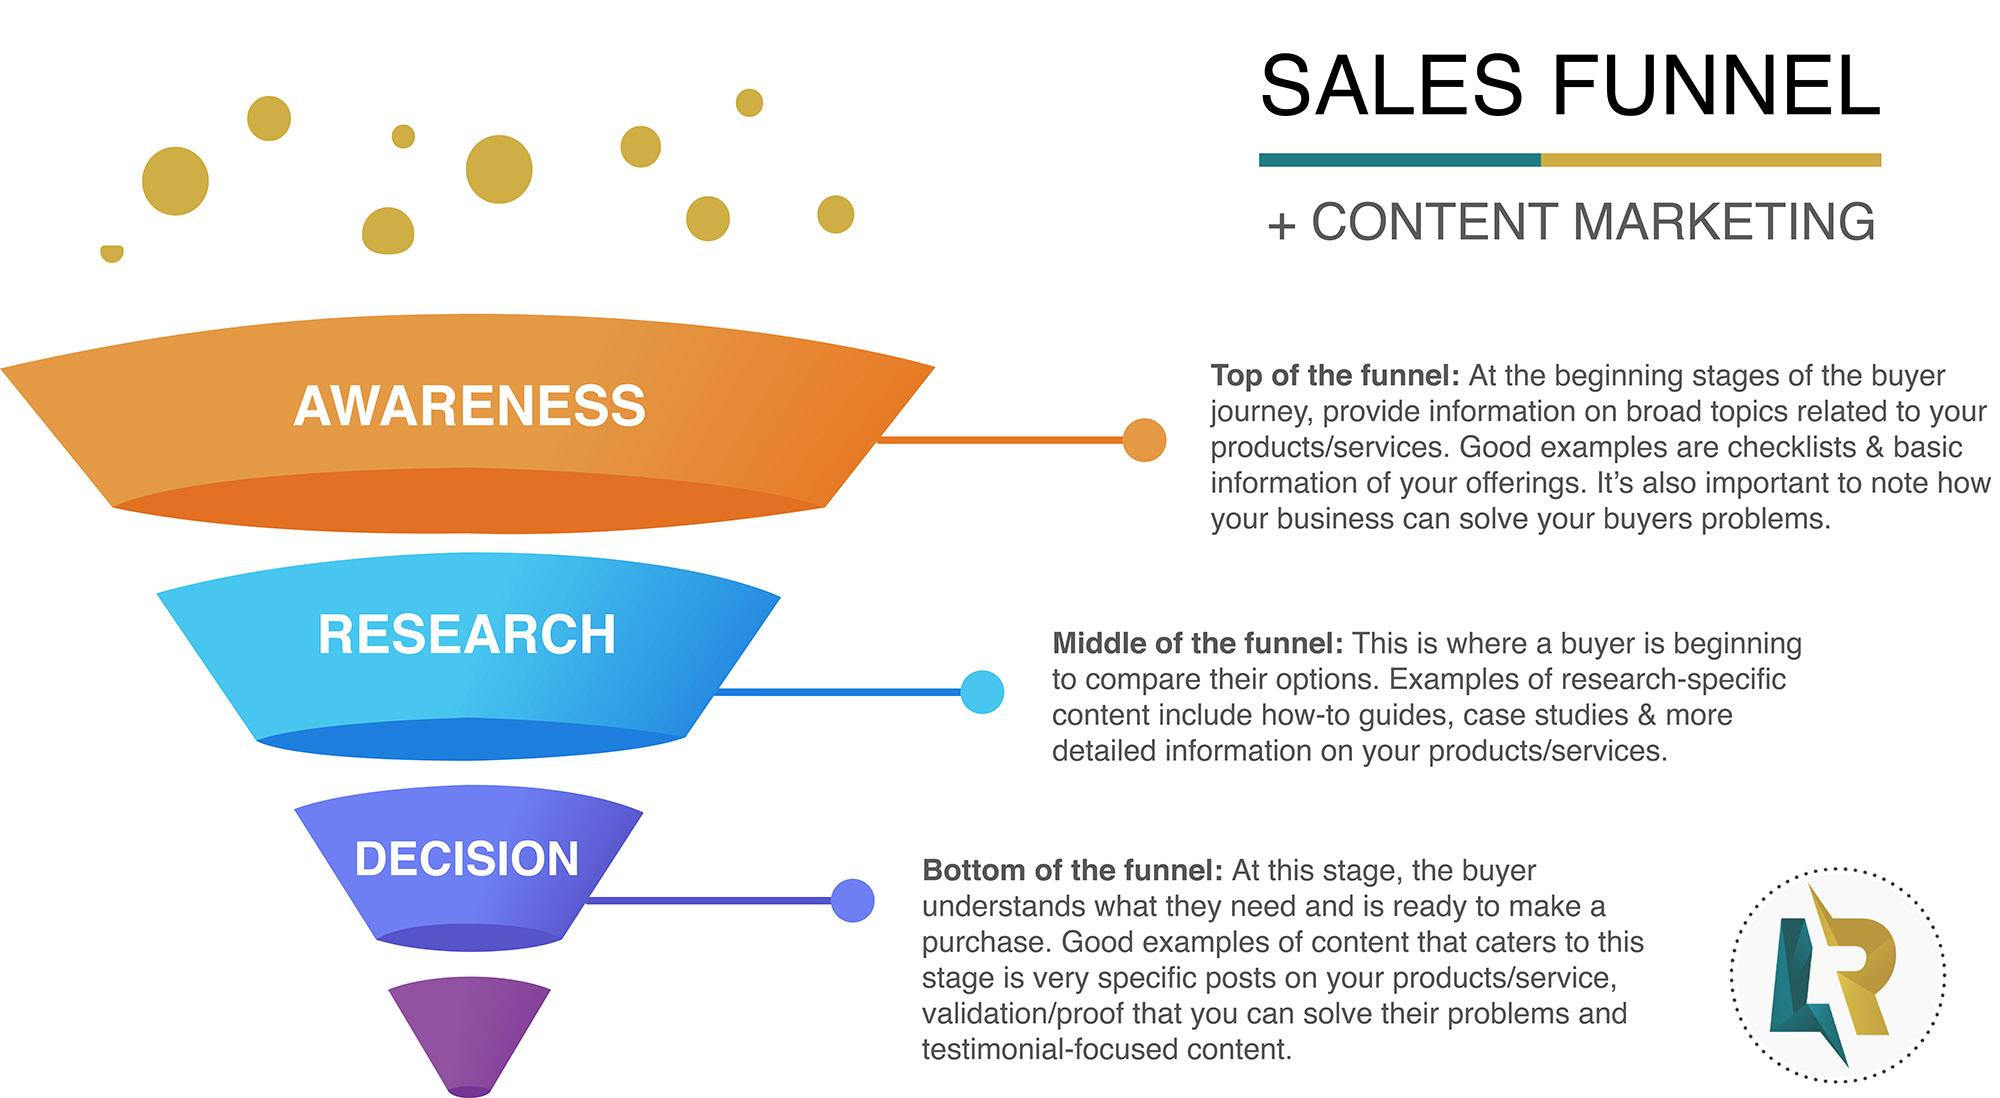 sales funnel with content marketing